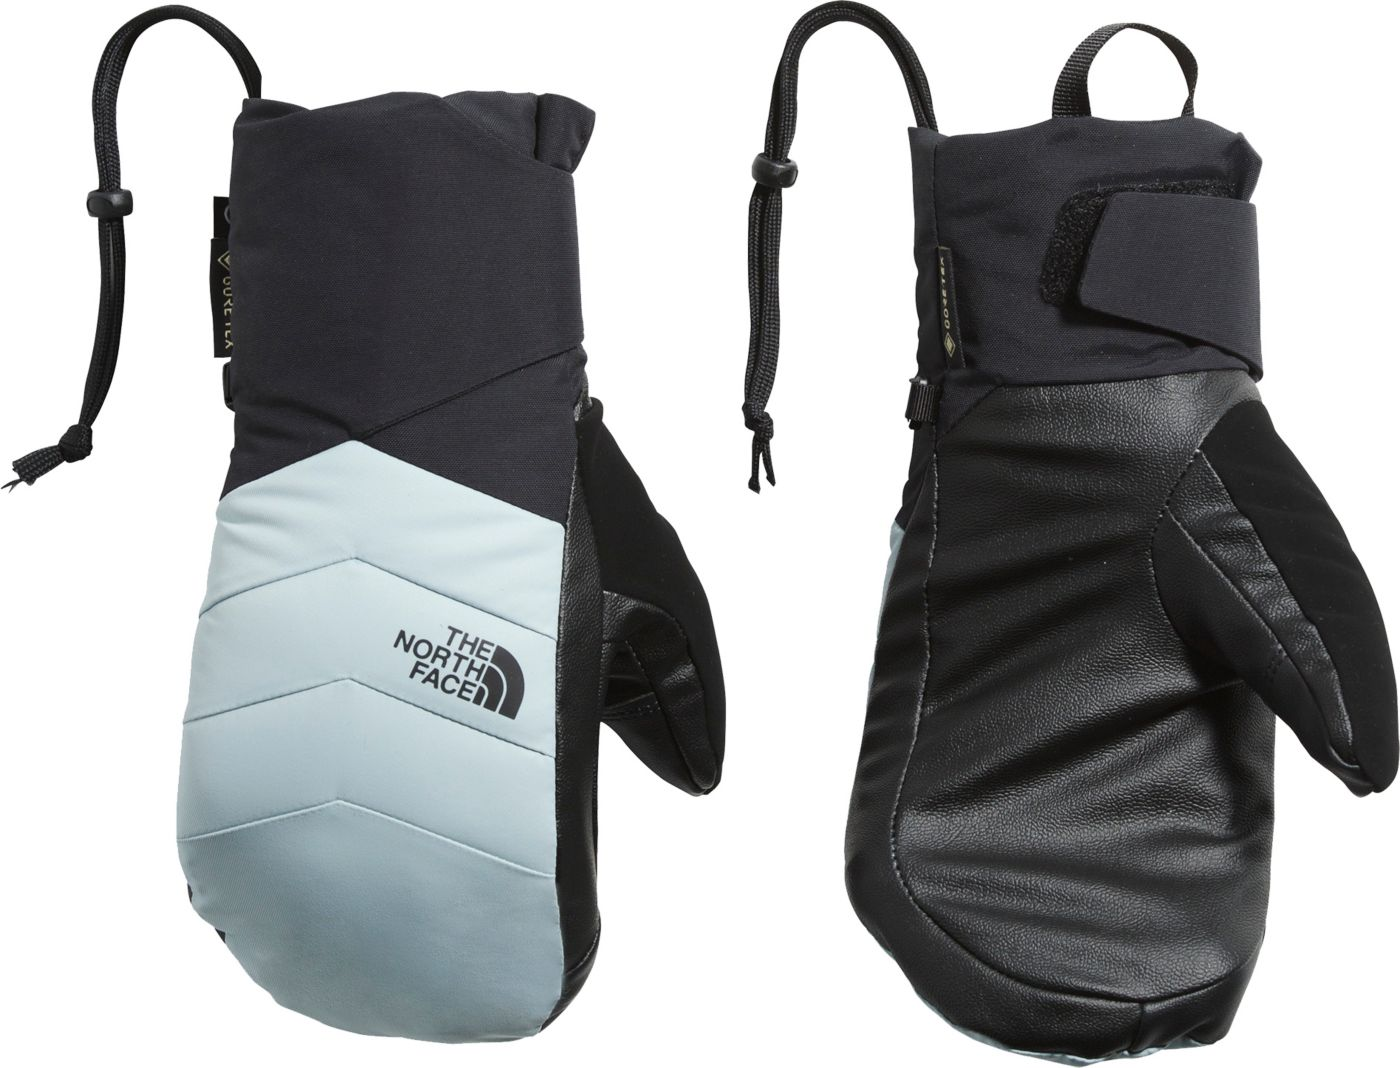 The North Face Women's Crossover Etip Mittens